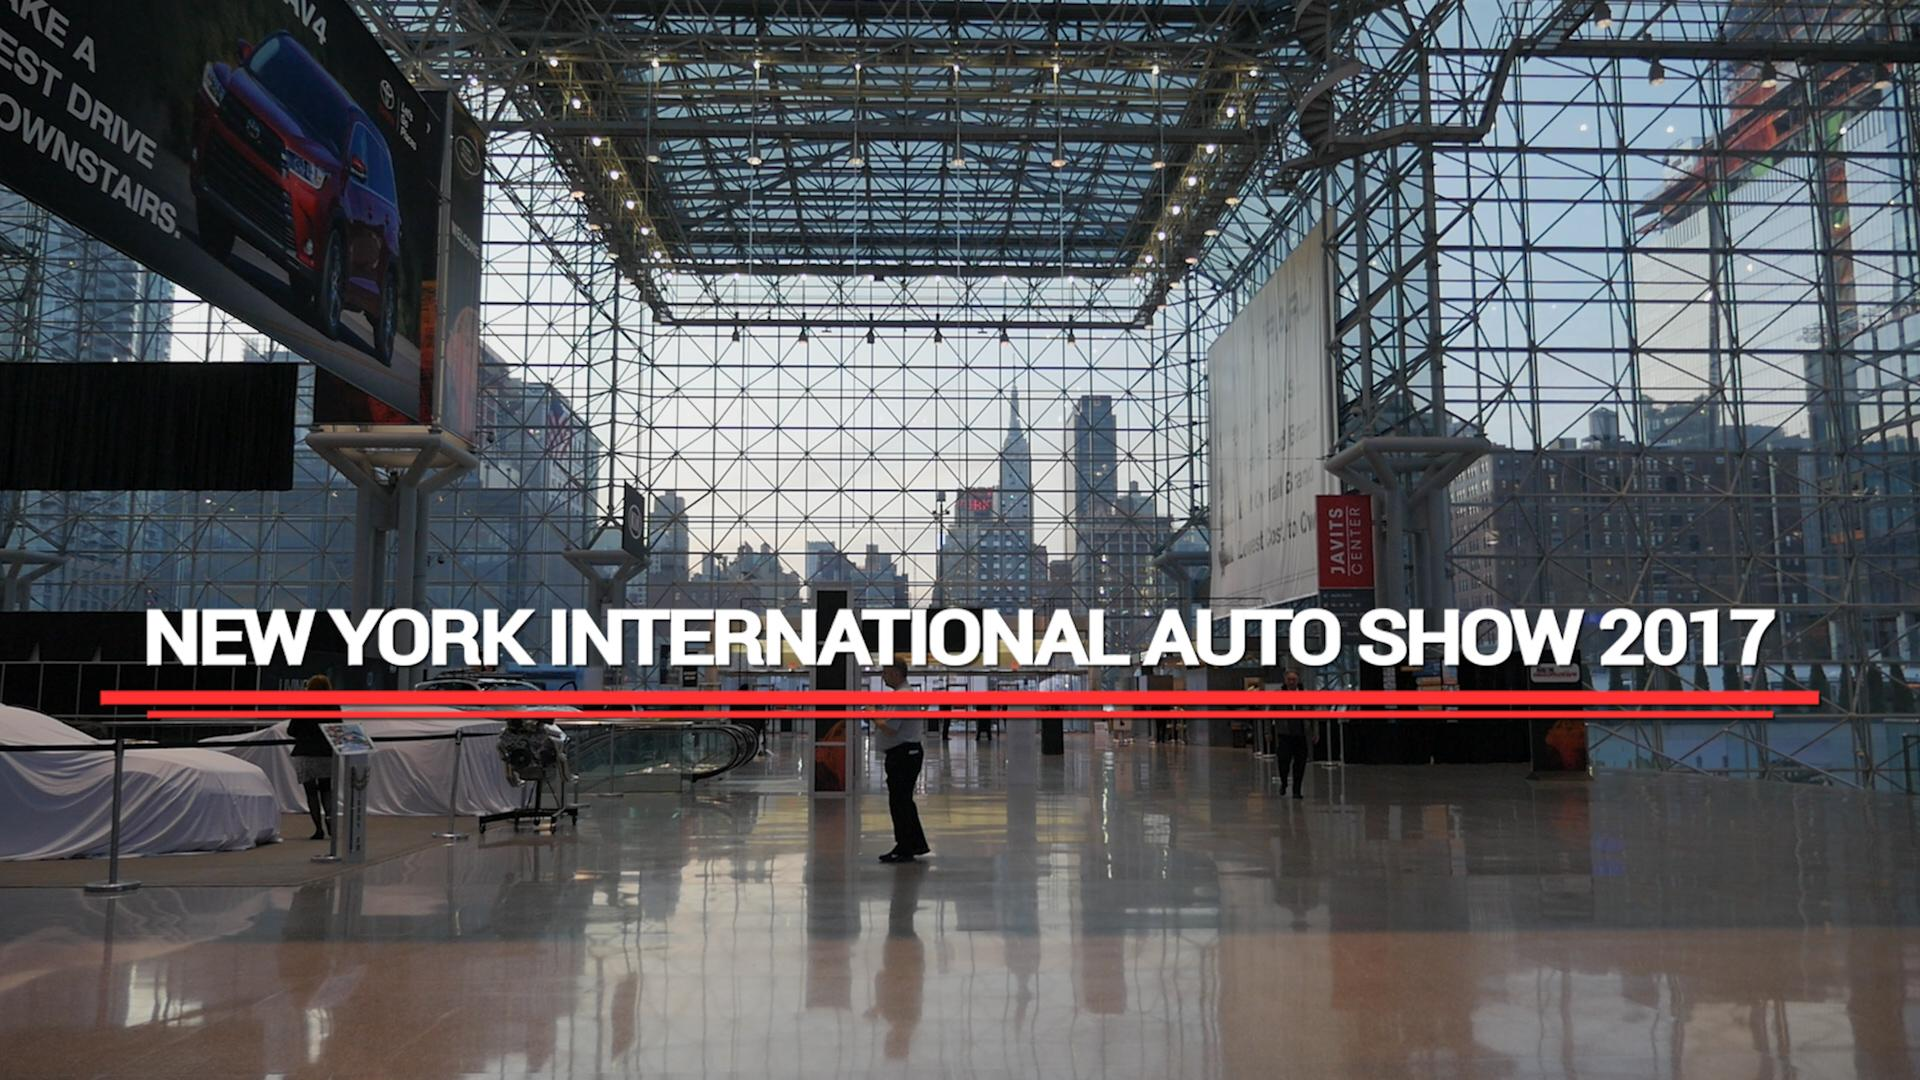 We obsessively covered the 2017 New York Auto Show: Here's a wrapup